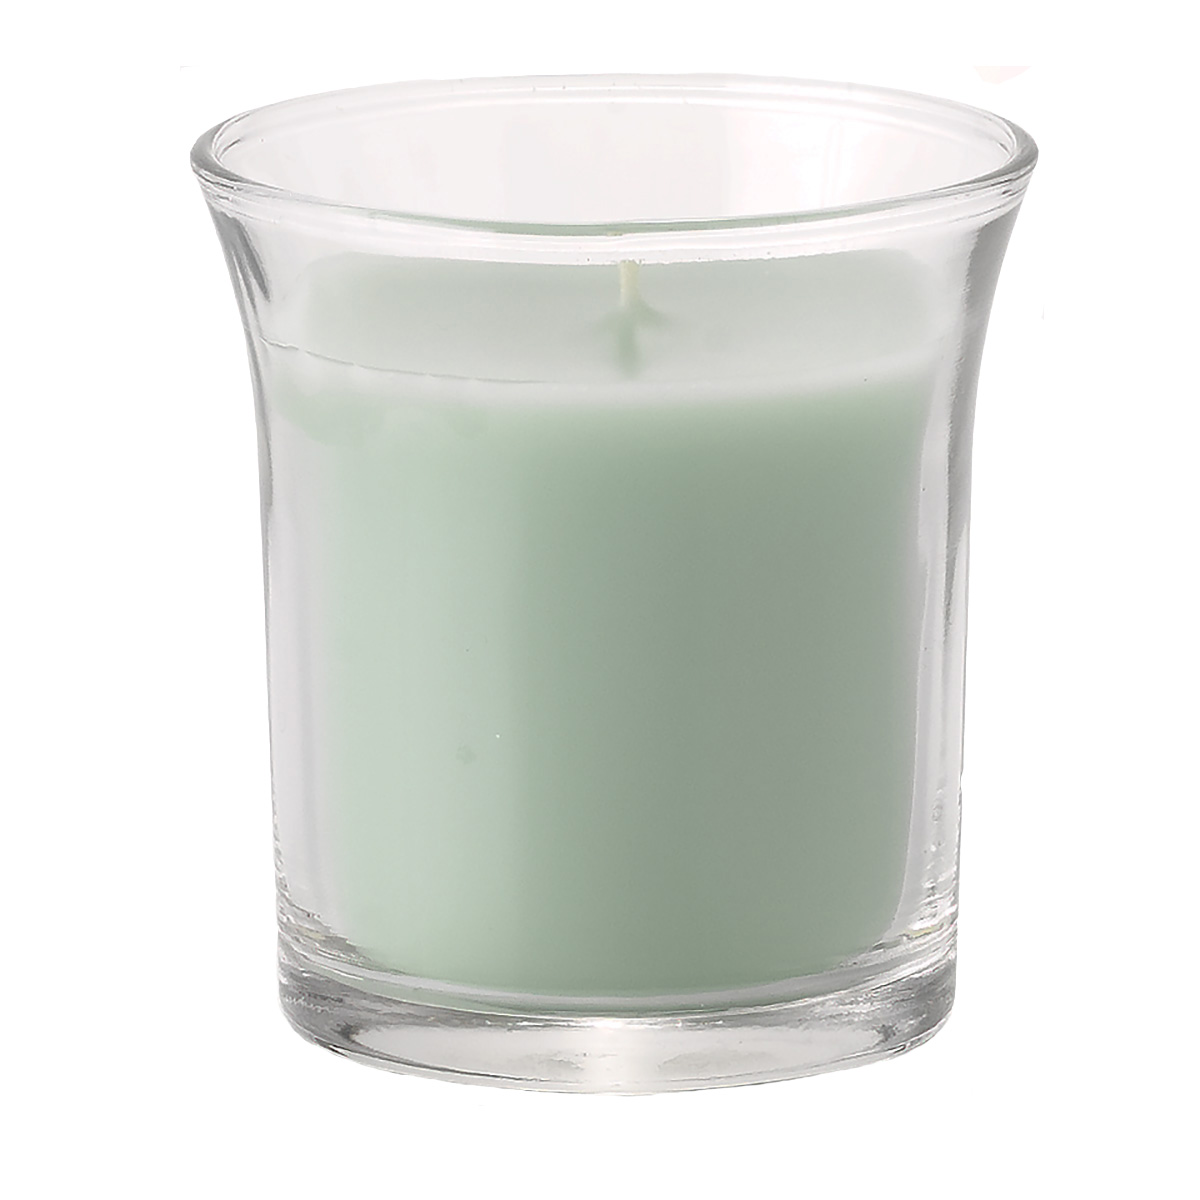 Belize Candle - Pear Vanilla (Light Green)